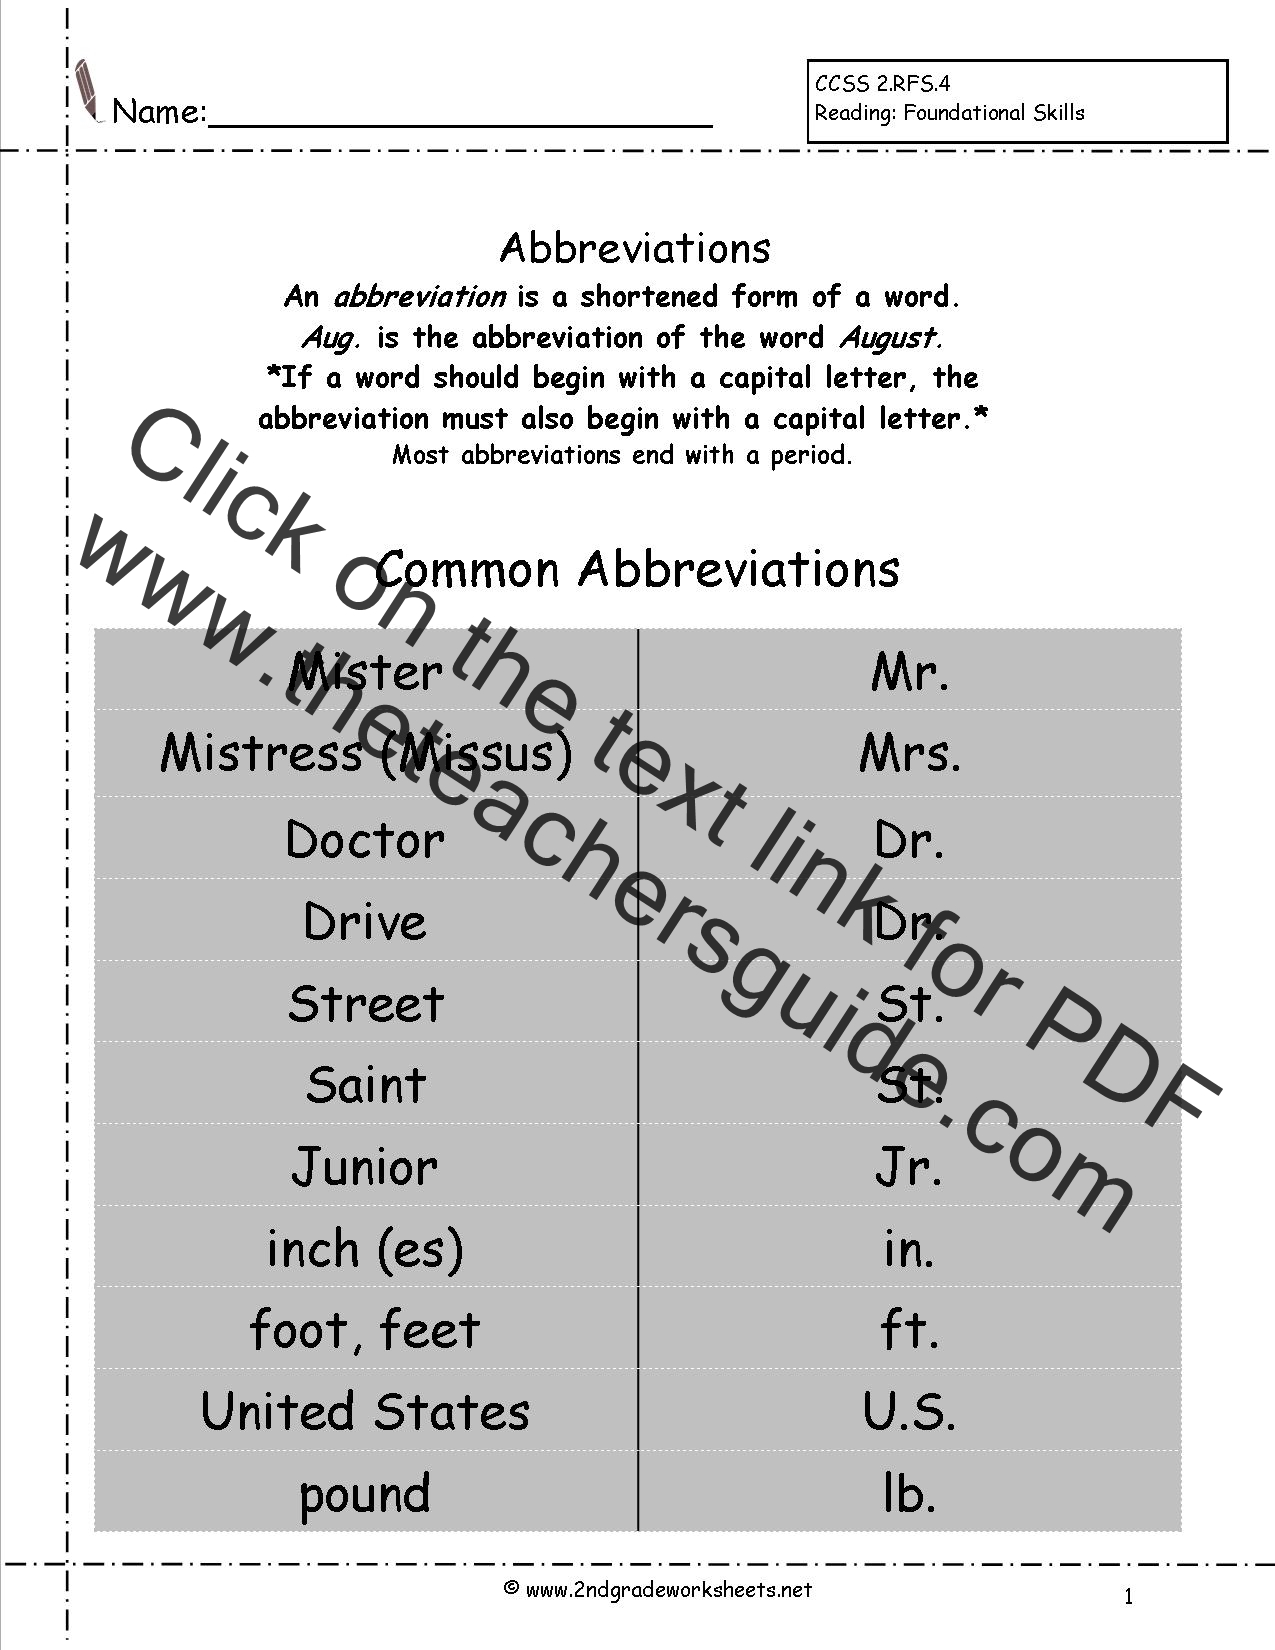 Free LanguageGrammar Worksheets and Printouts – Grammar Worksheets Free